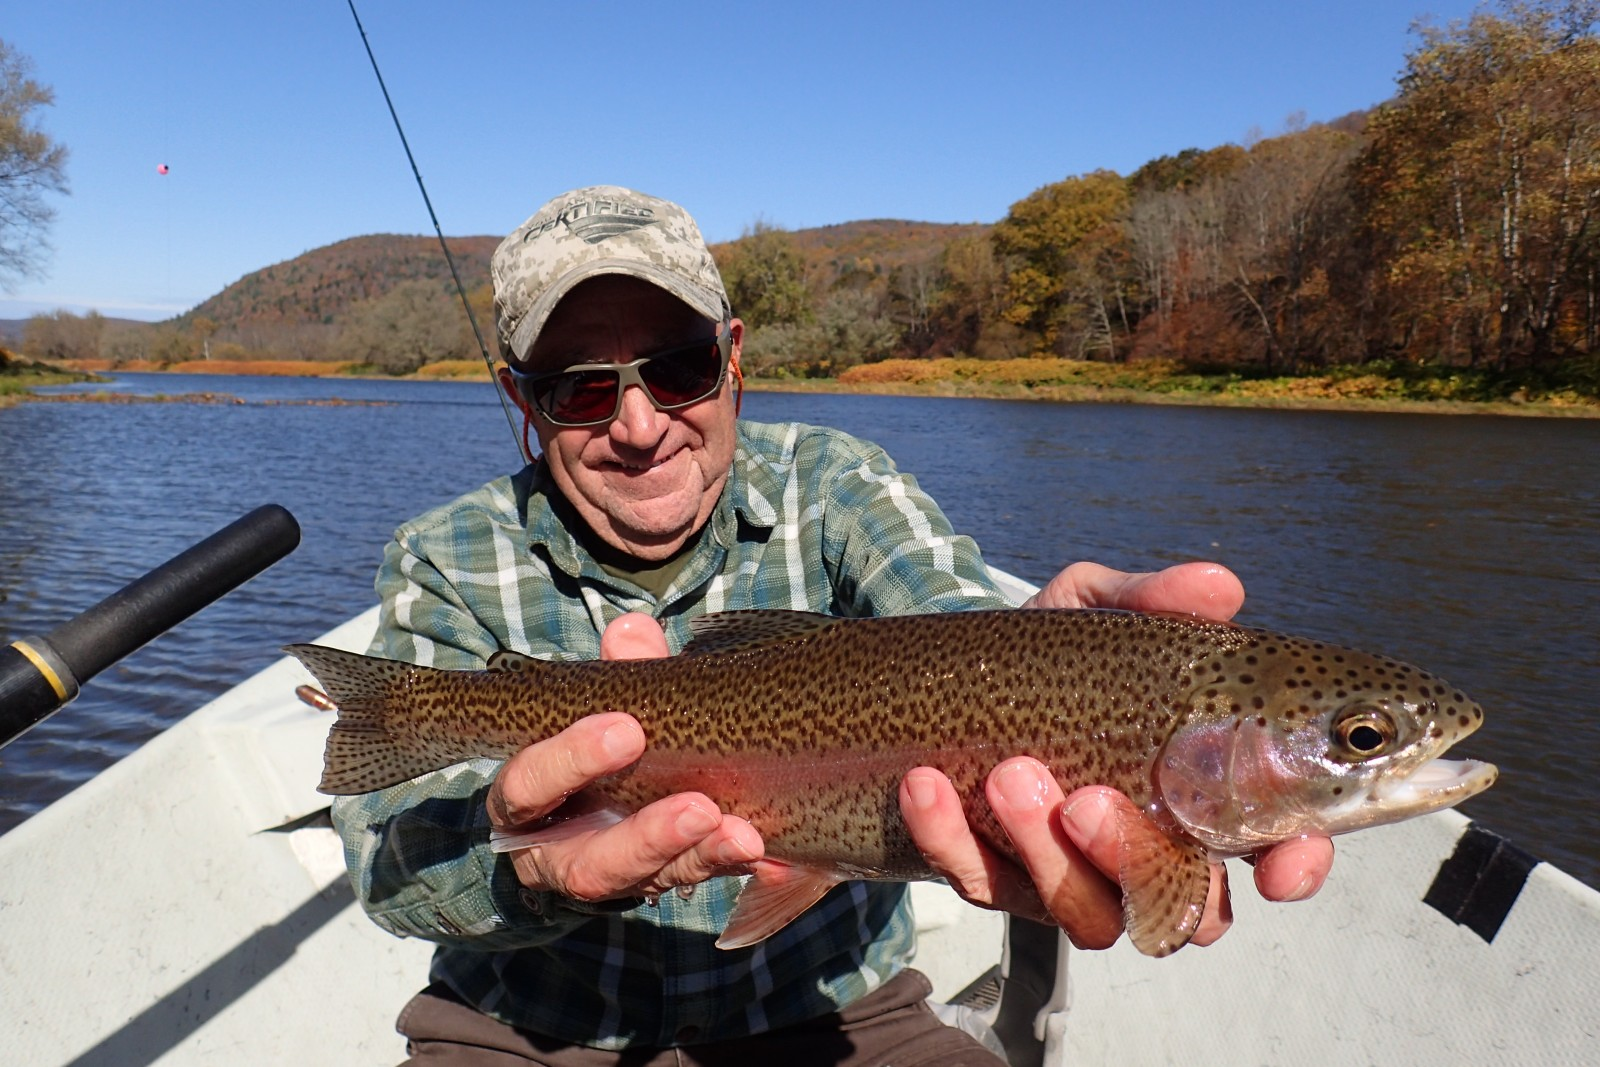 guided fly fishing tours on the delaware river for big trout with jesse filingo of filingo fly fishing